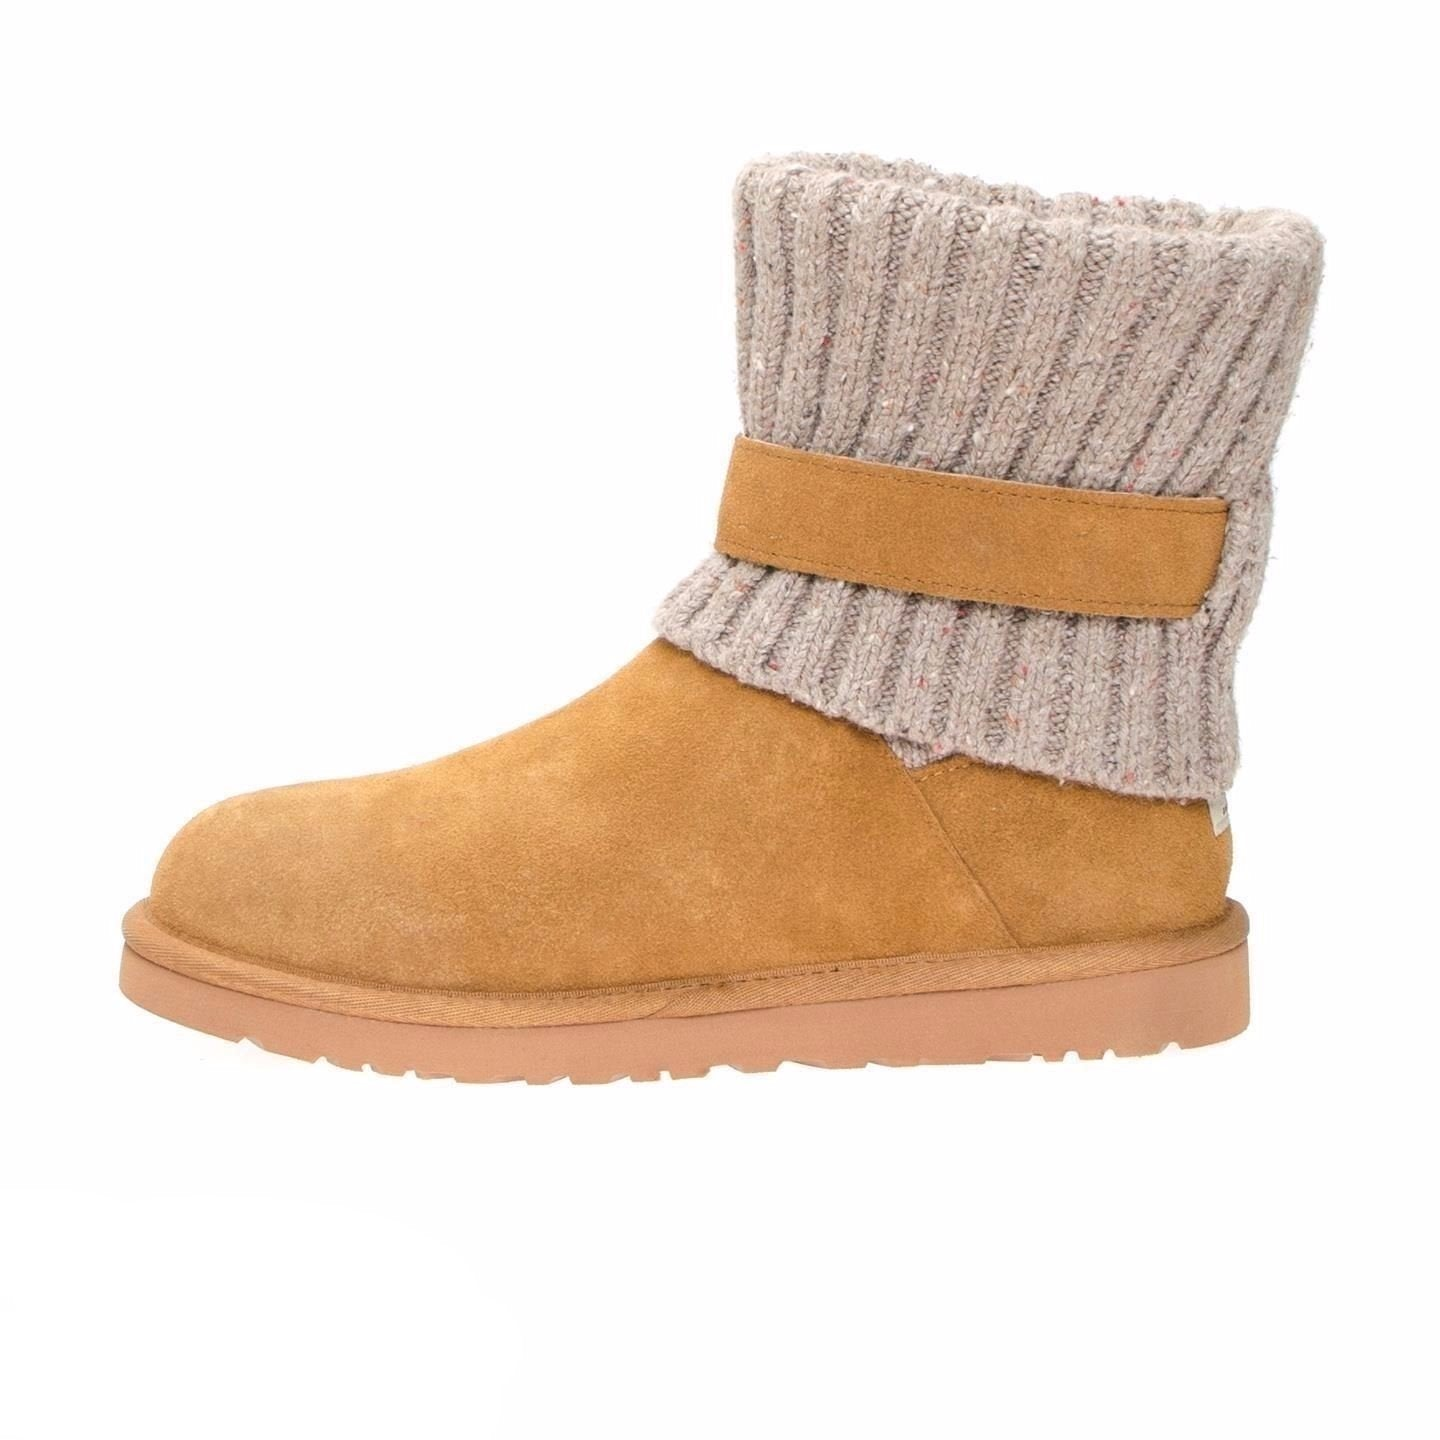 526ff848369 UGG Cambridge Chestnut Boots